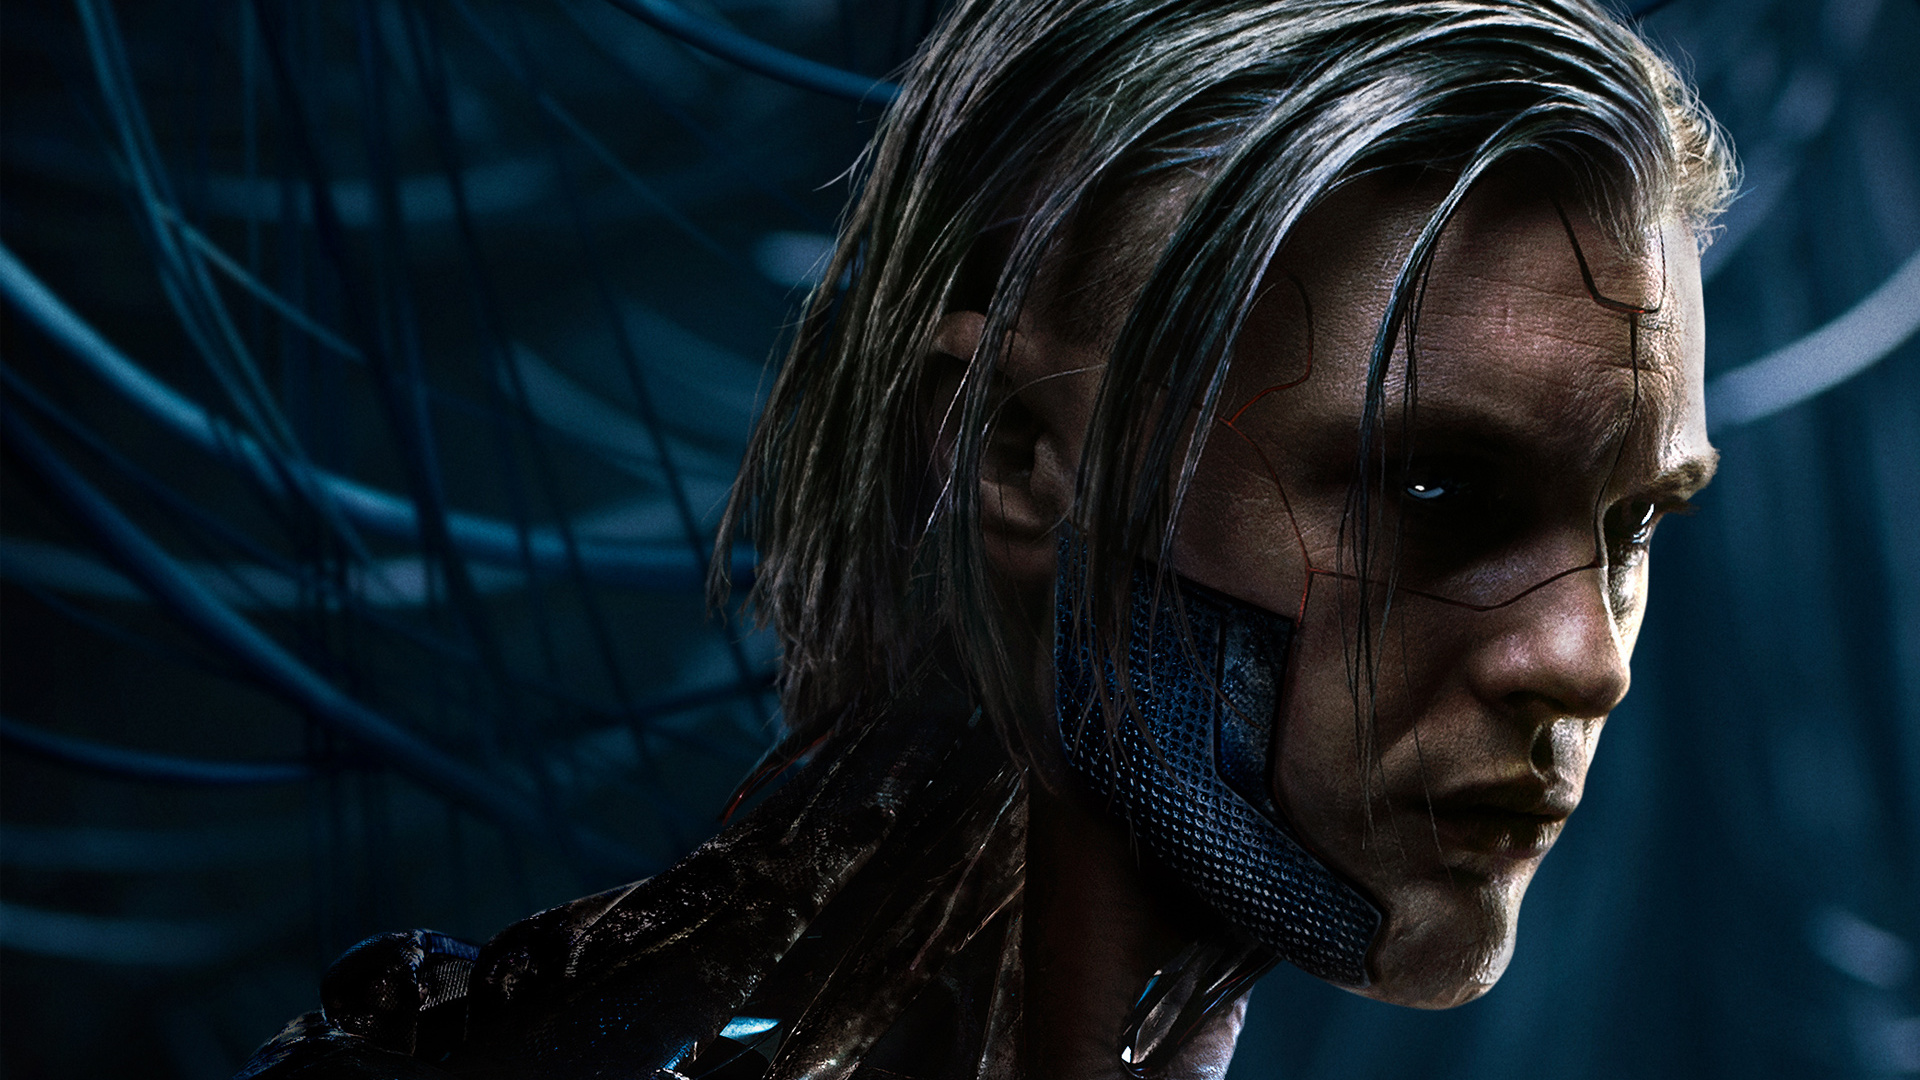 Hideo Kuze Michael Pitt Ghost In The Shell Wallpaper Free Wallpapers